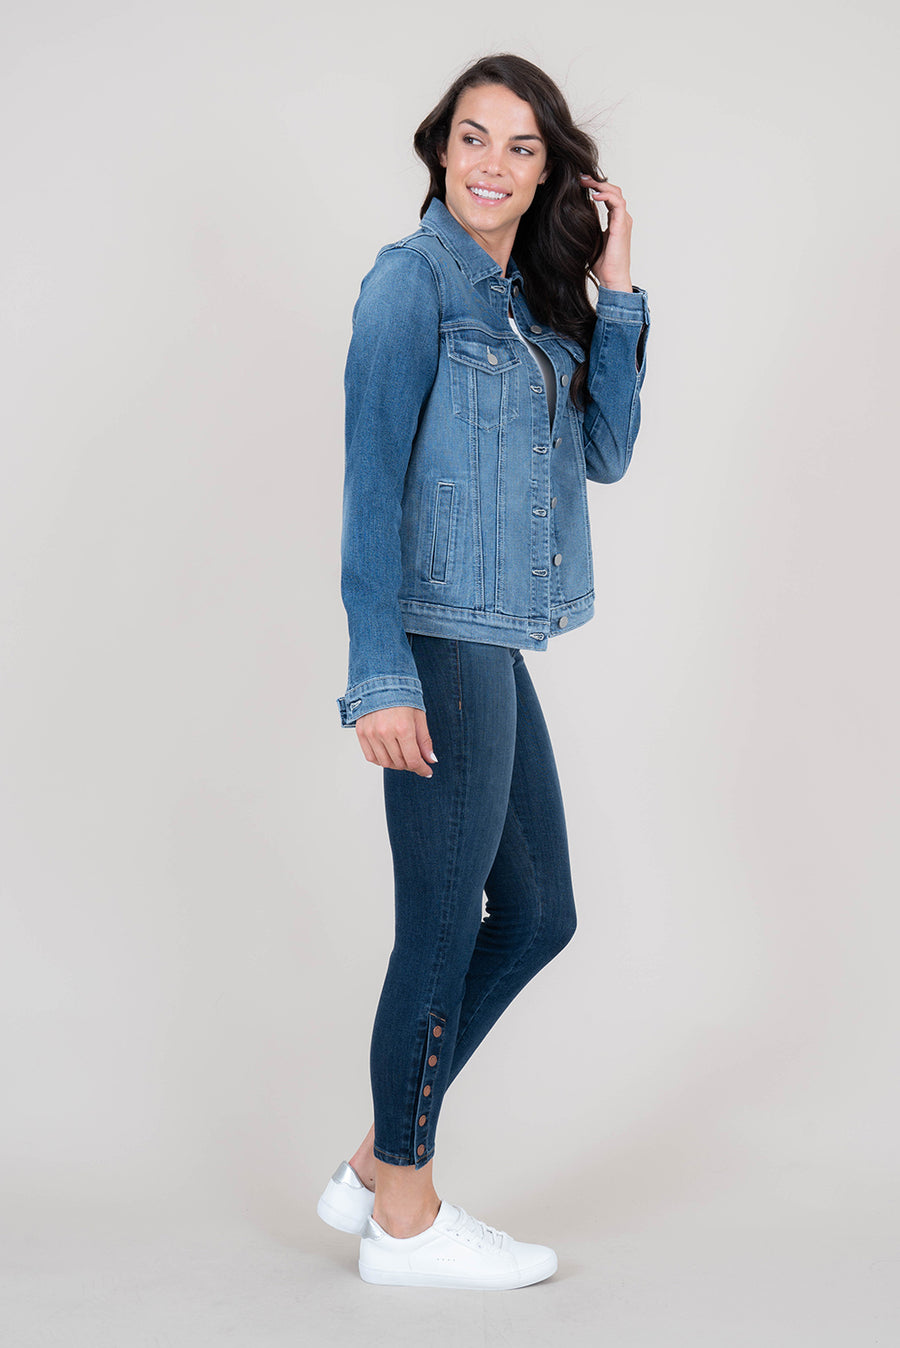 June Denim Jacket - level99jeans